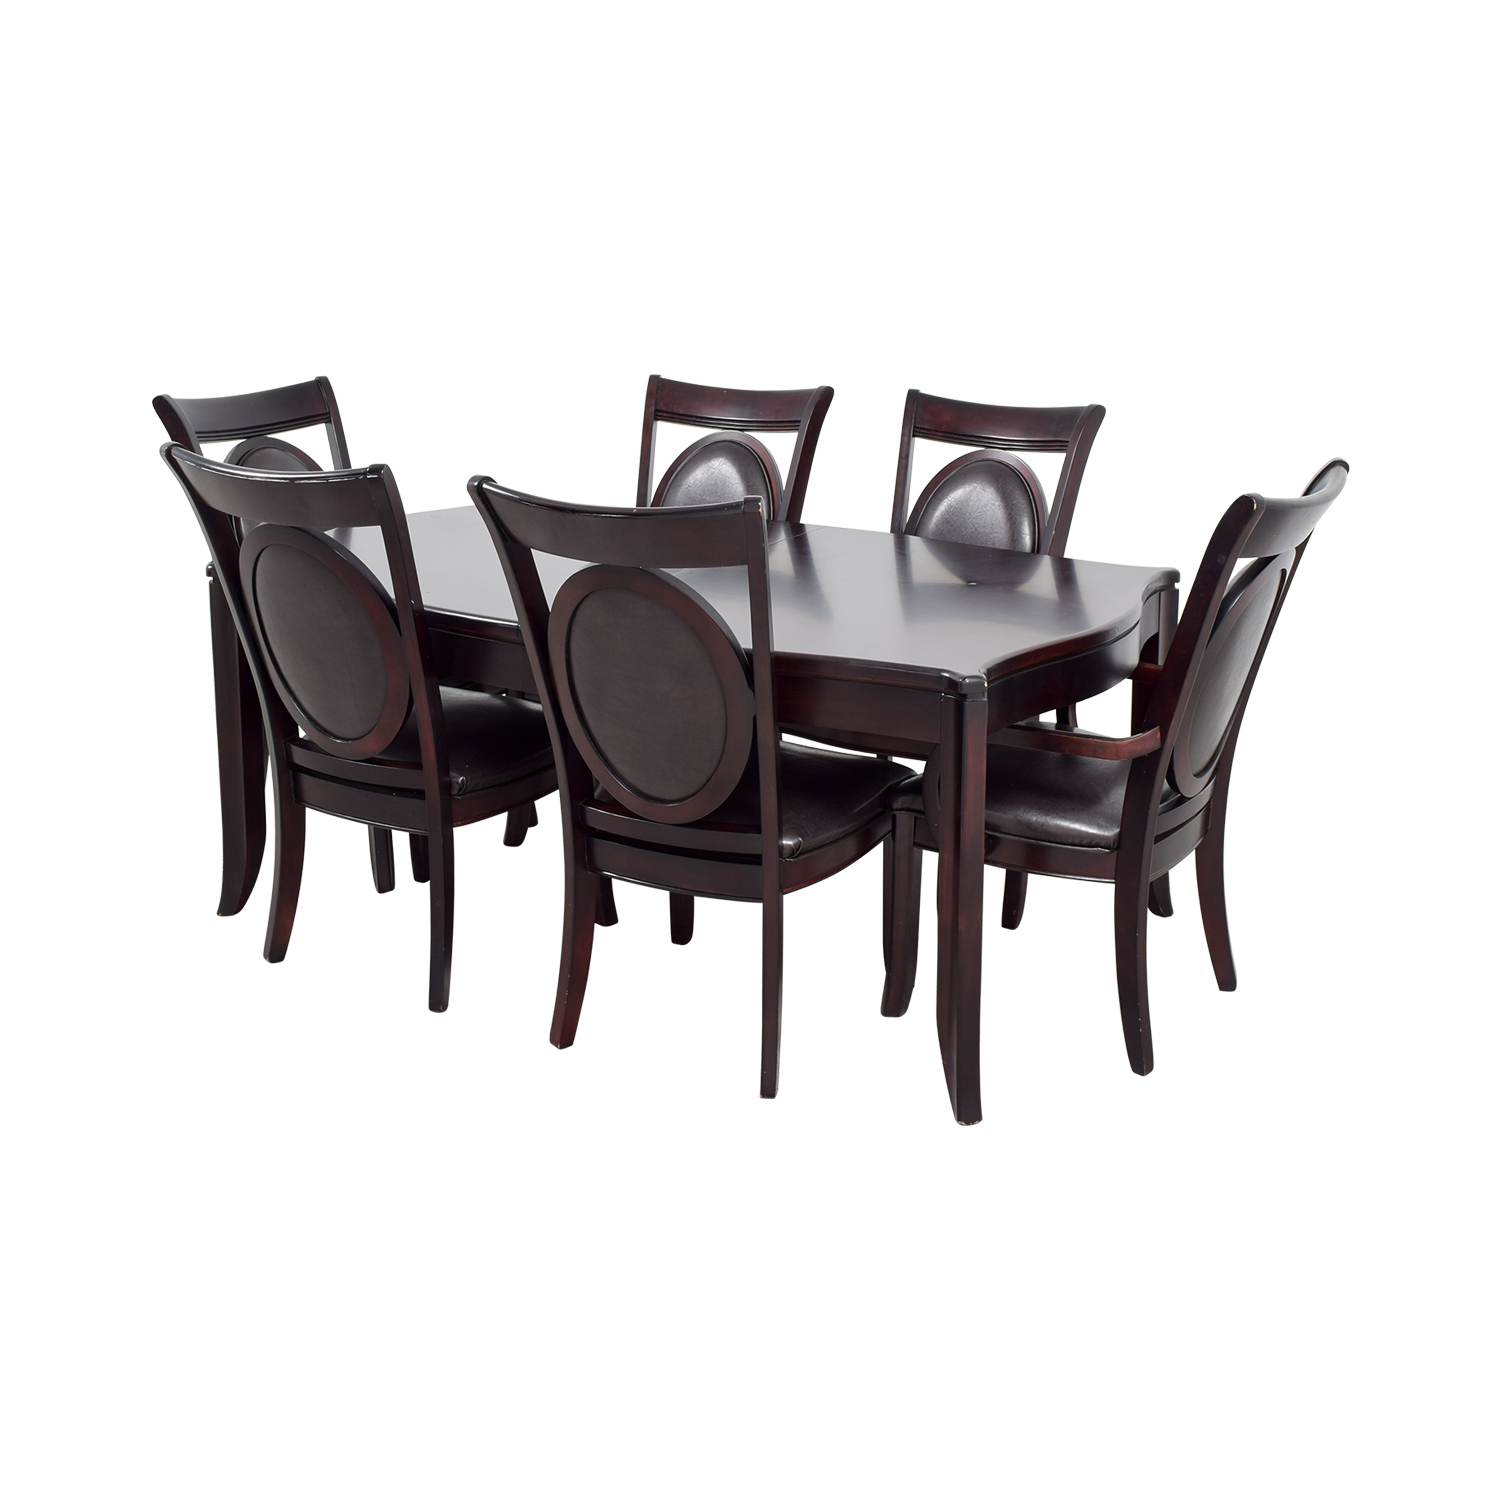 Leather Dining Set: Dark Wood And Black Leather Dining Set / Tables